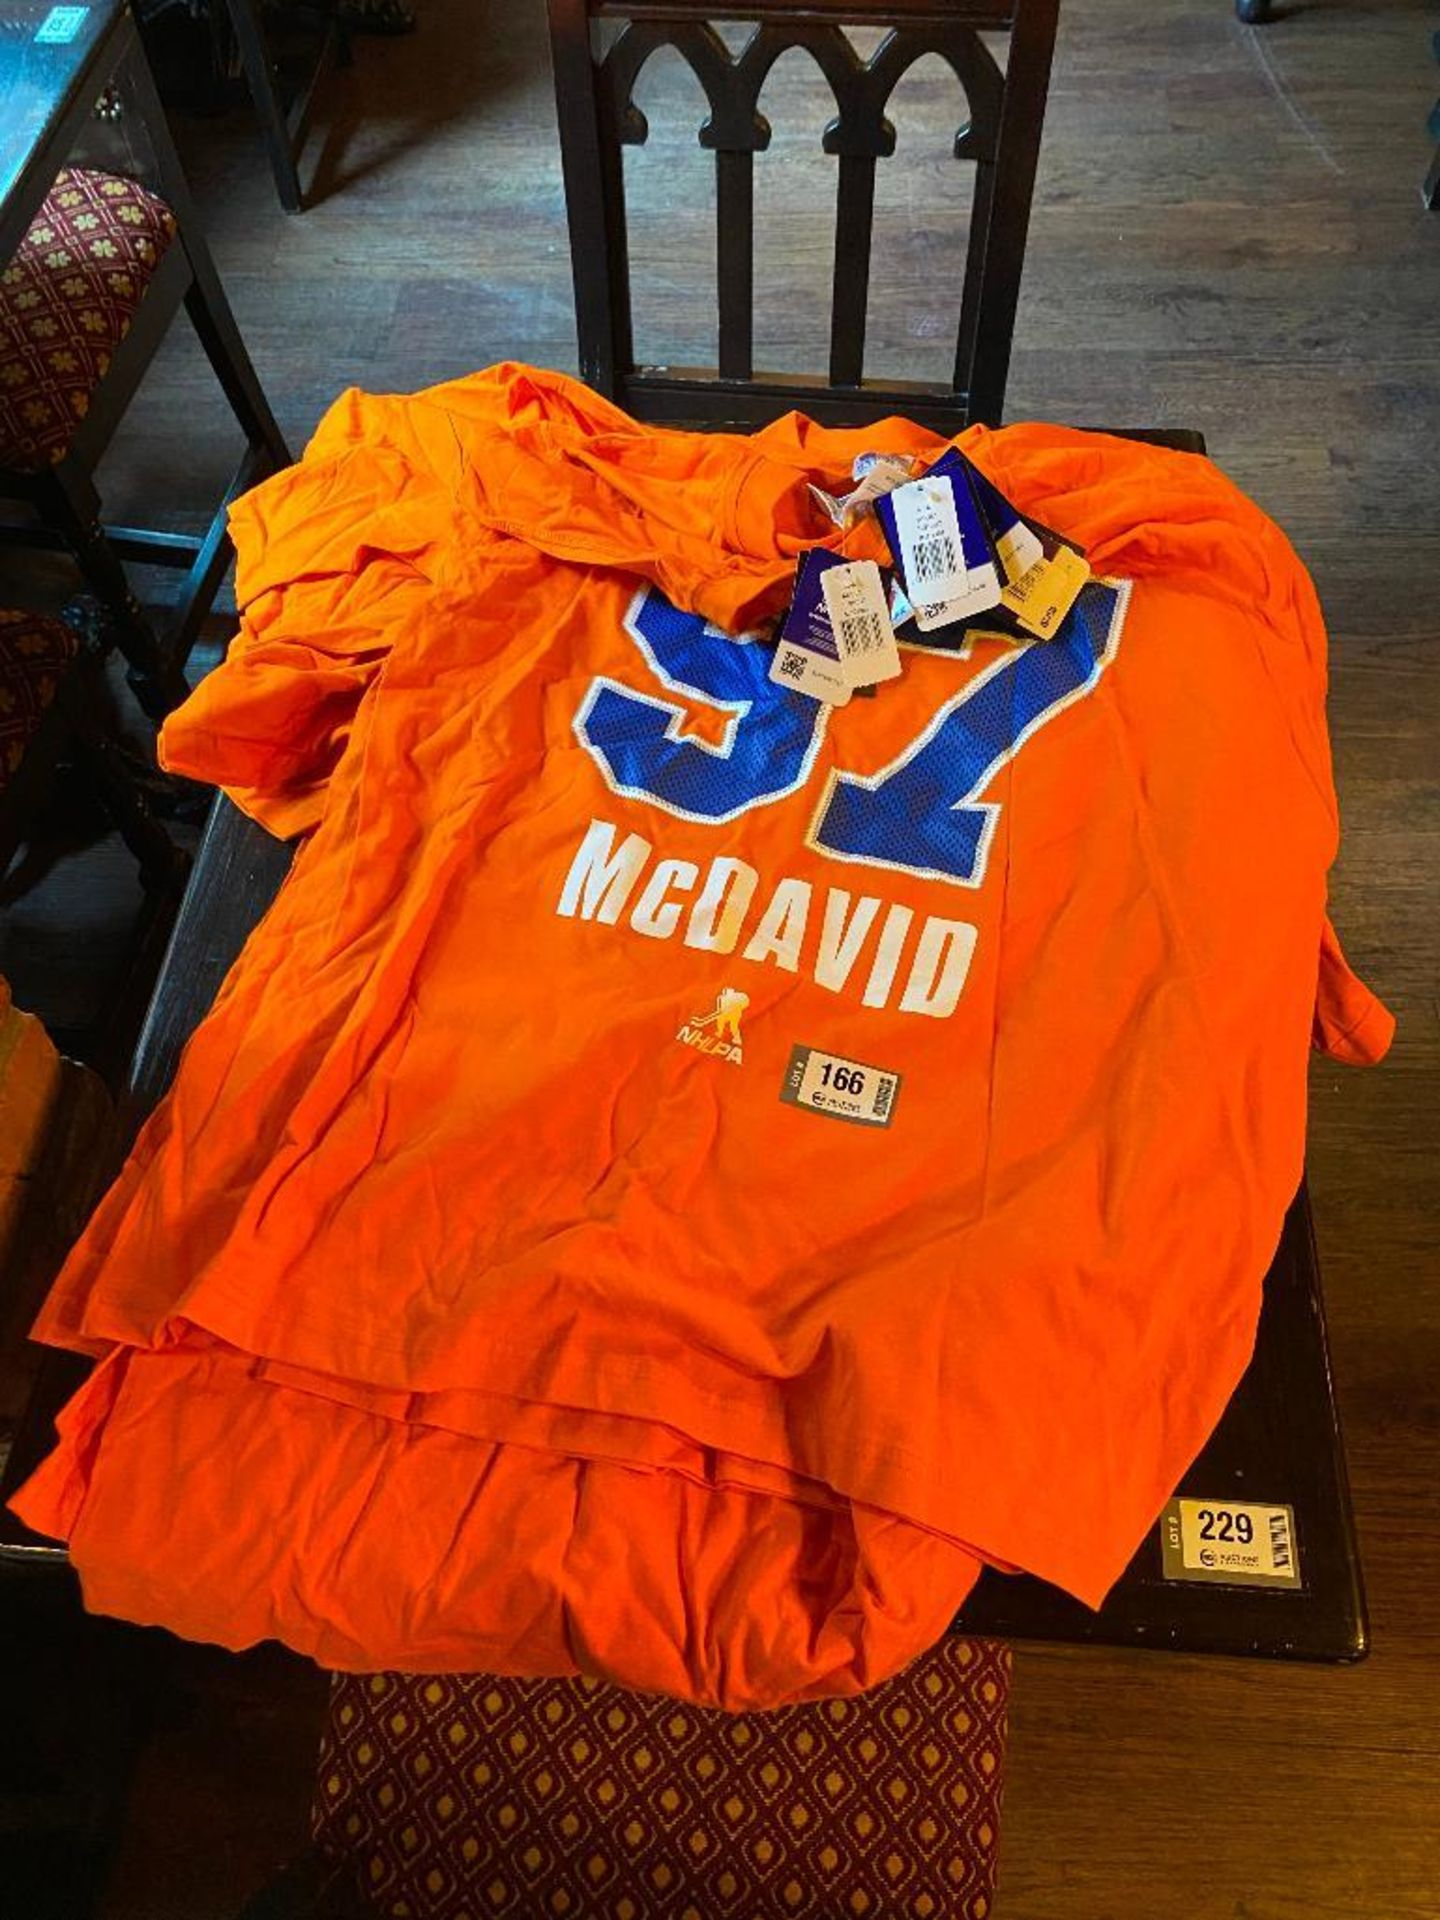 LOT OF (6) CONNOR McDAVID OILER T-SHIRTS - Image 2 of 2